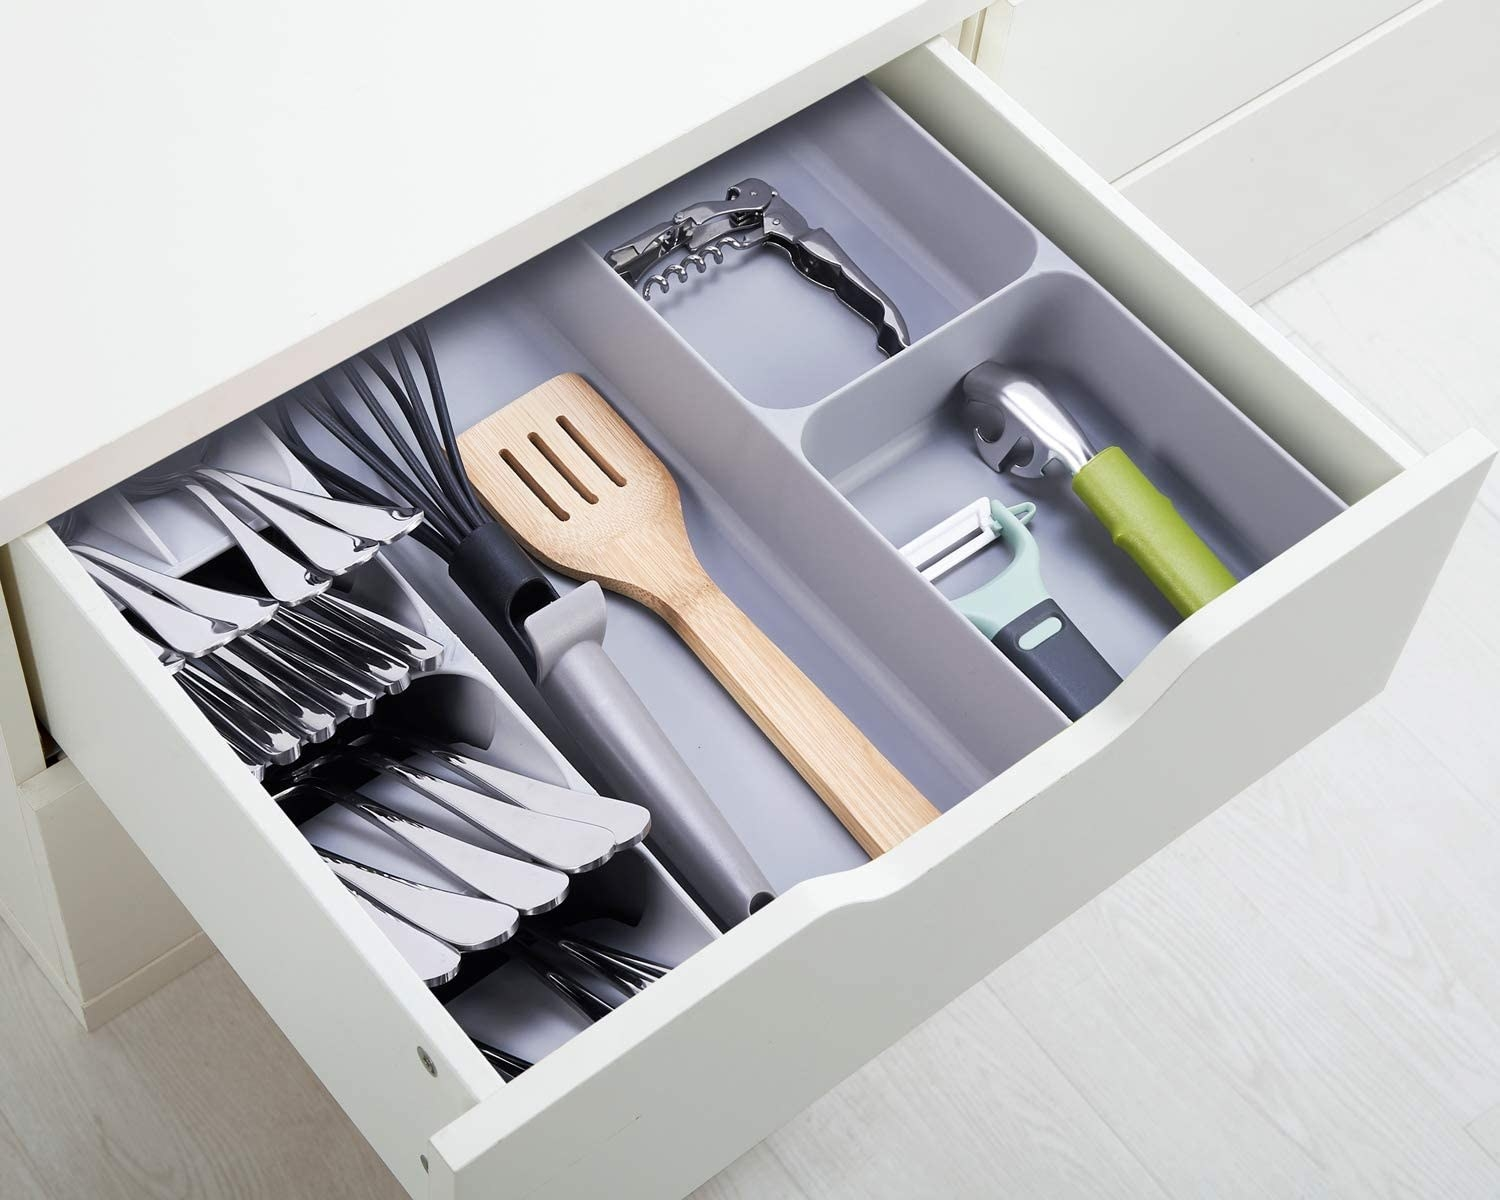 The cutlery tray in a drawer filled with utensils and cooking tools